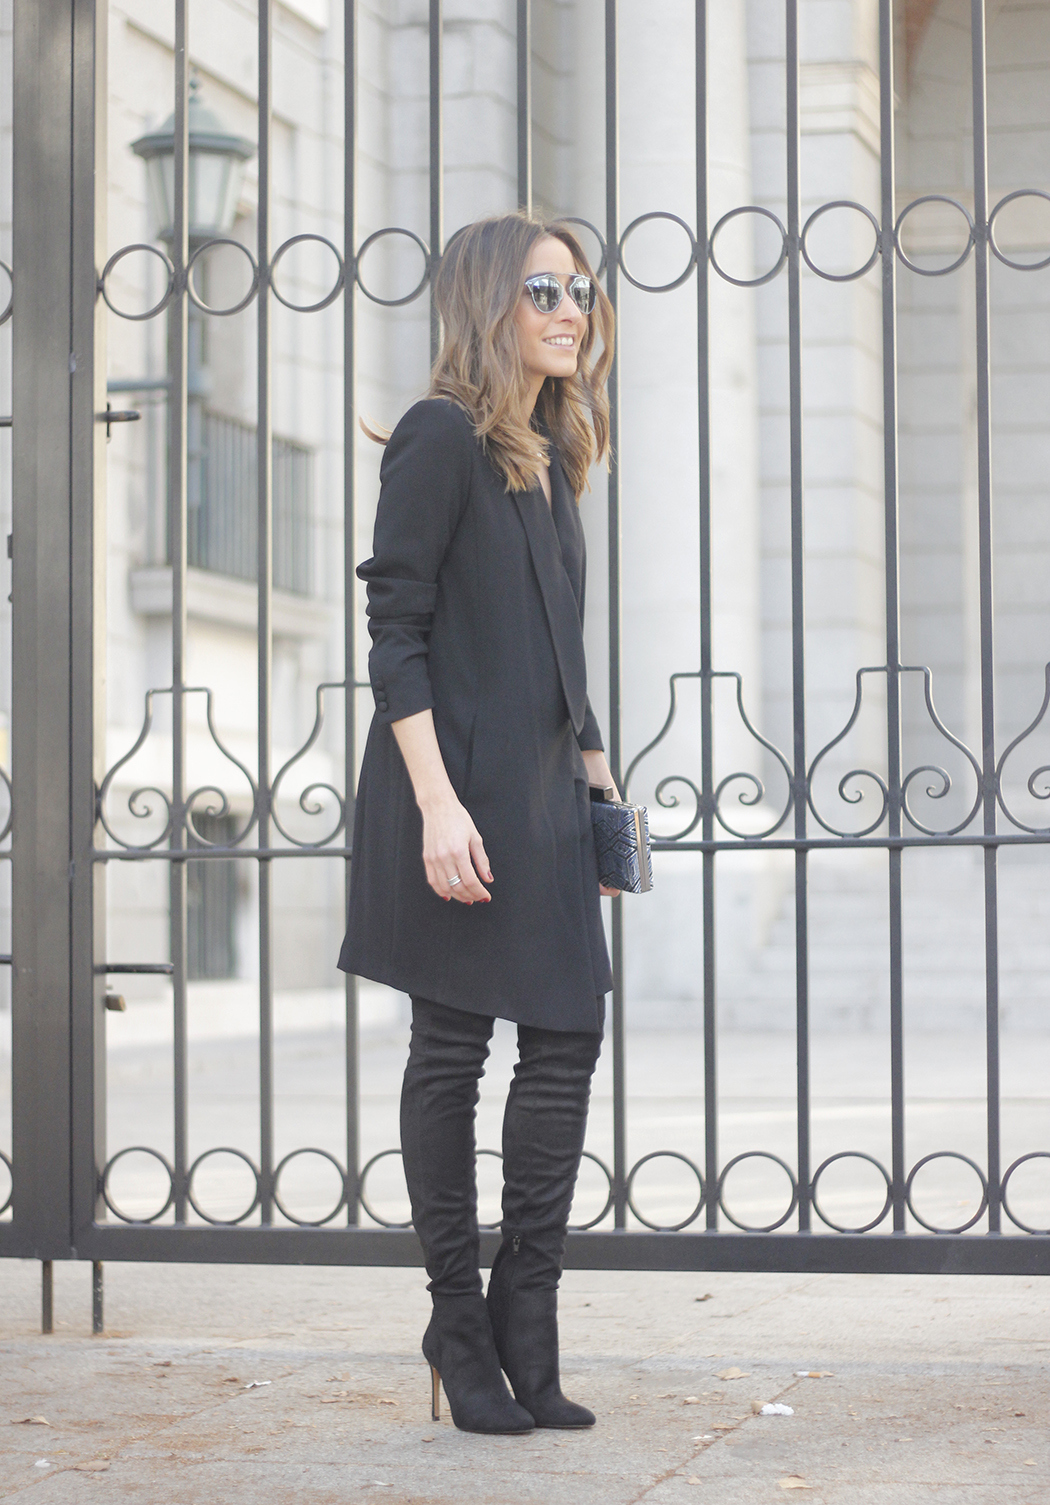 BLack Tuxedo dress black over the knee boots dior so real sunnies bulgary jewellery10